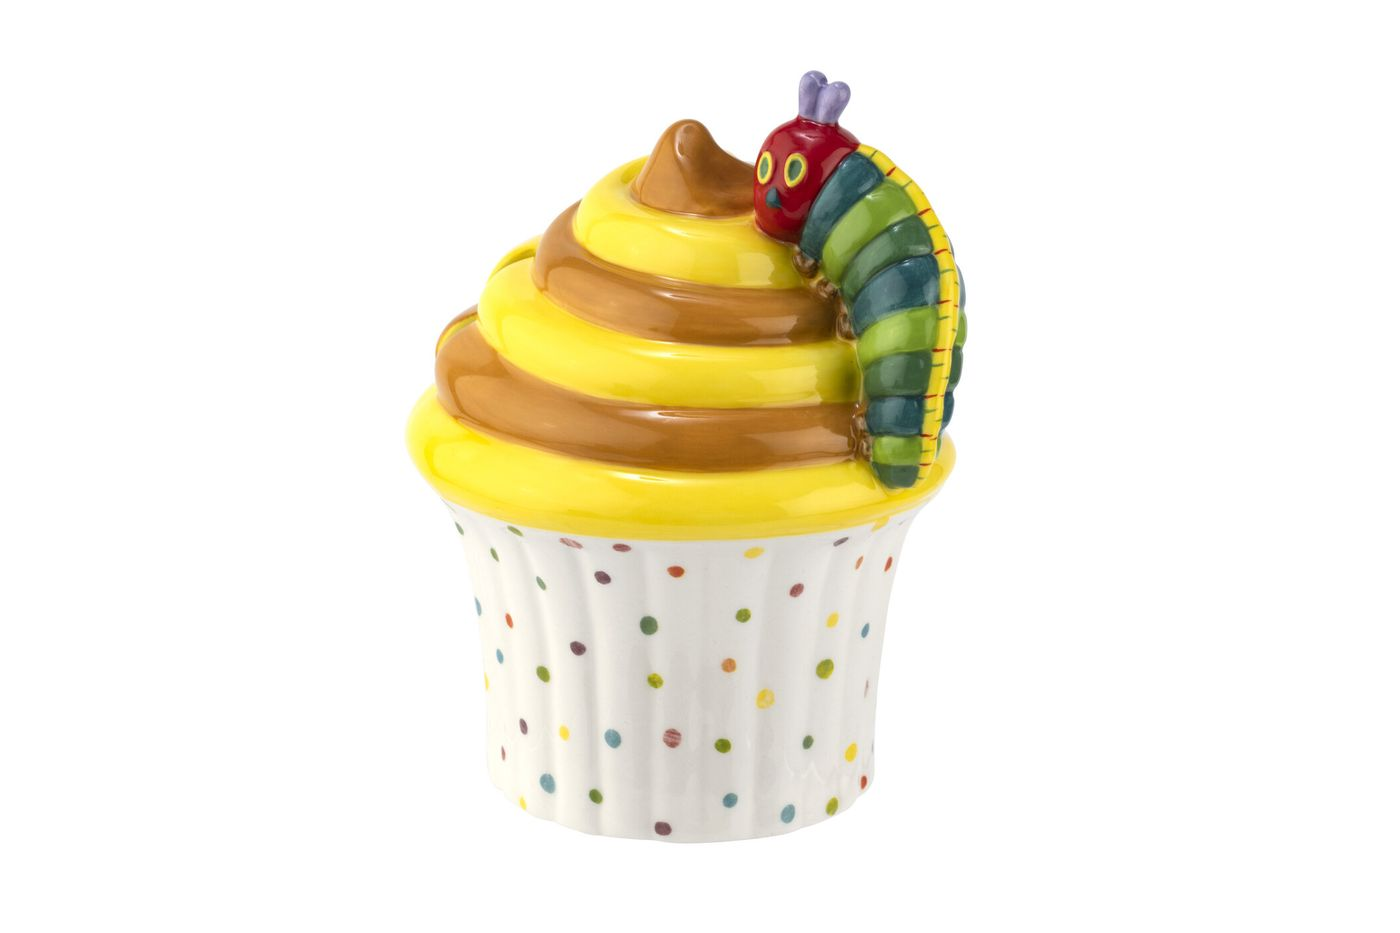 Portmeirion The Very Hungry Caterpillar by Eric Carle Money Box Cupcake thumb 1